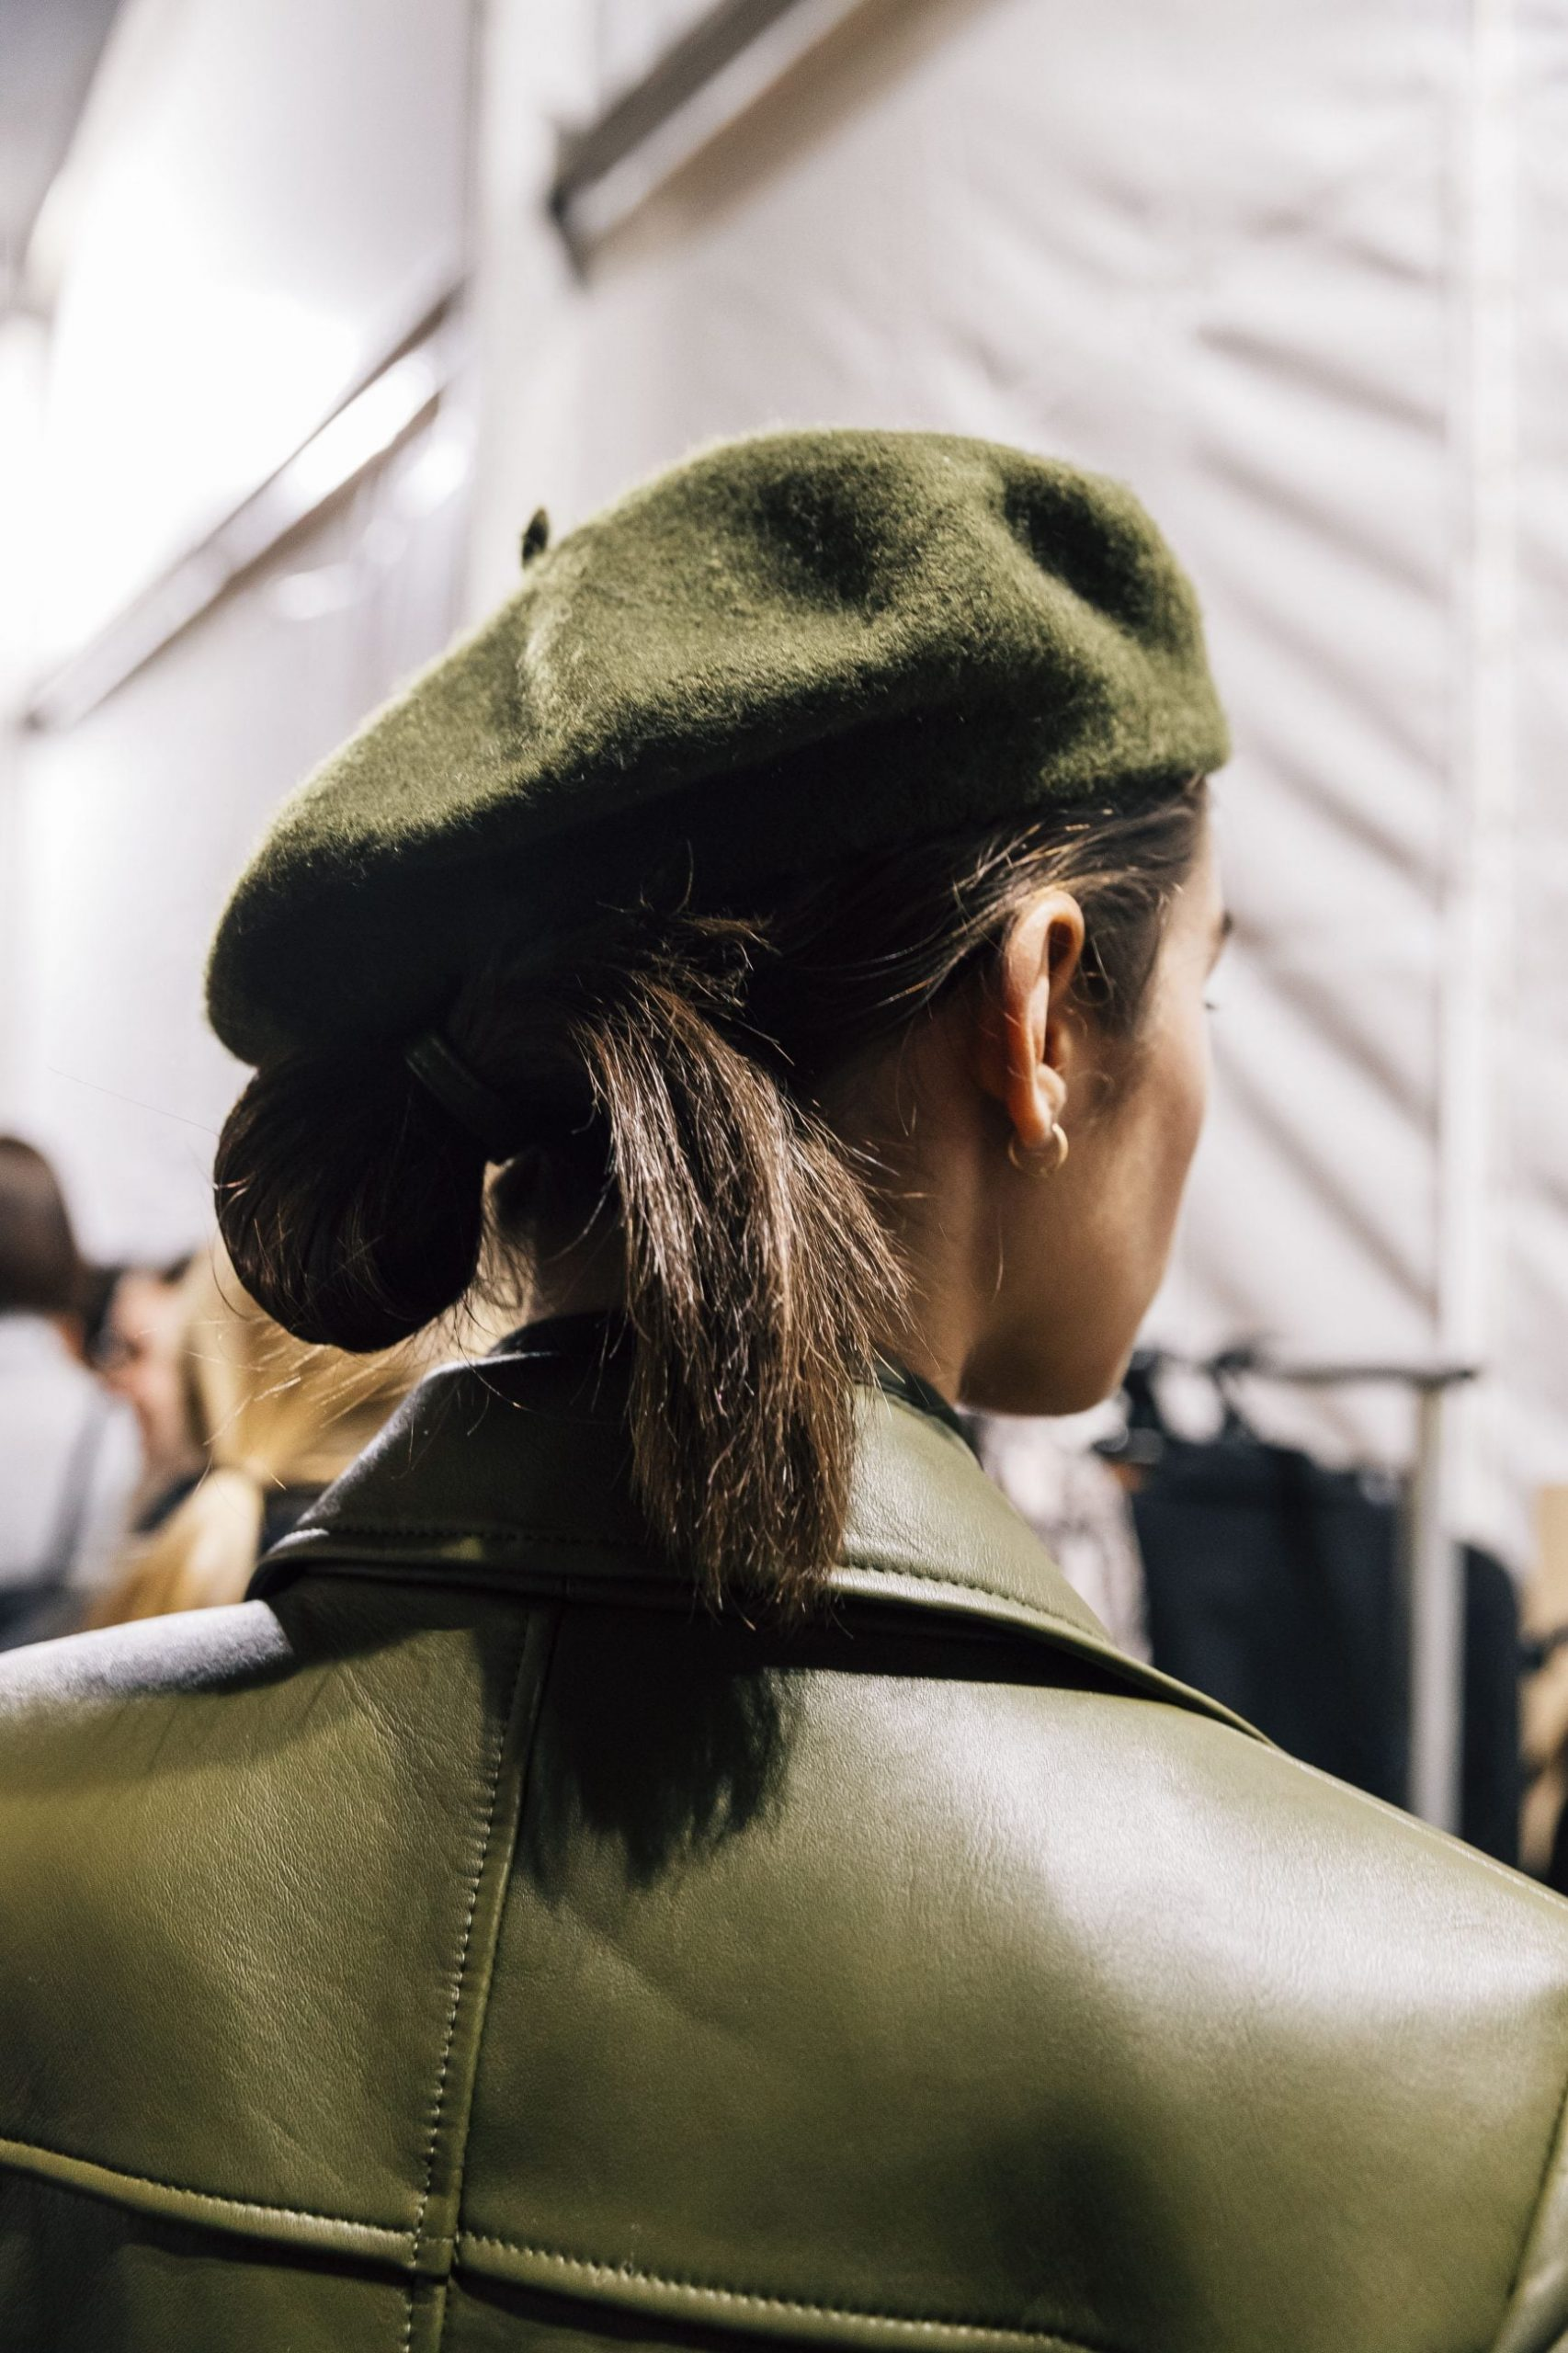 Nzfw Ks Backstagestills Mg 9322